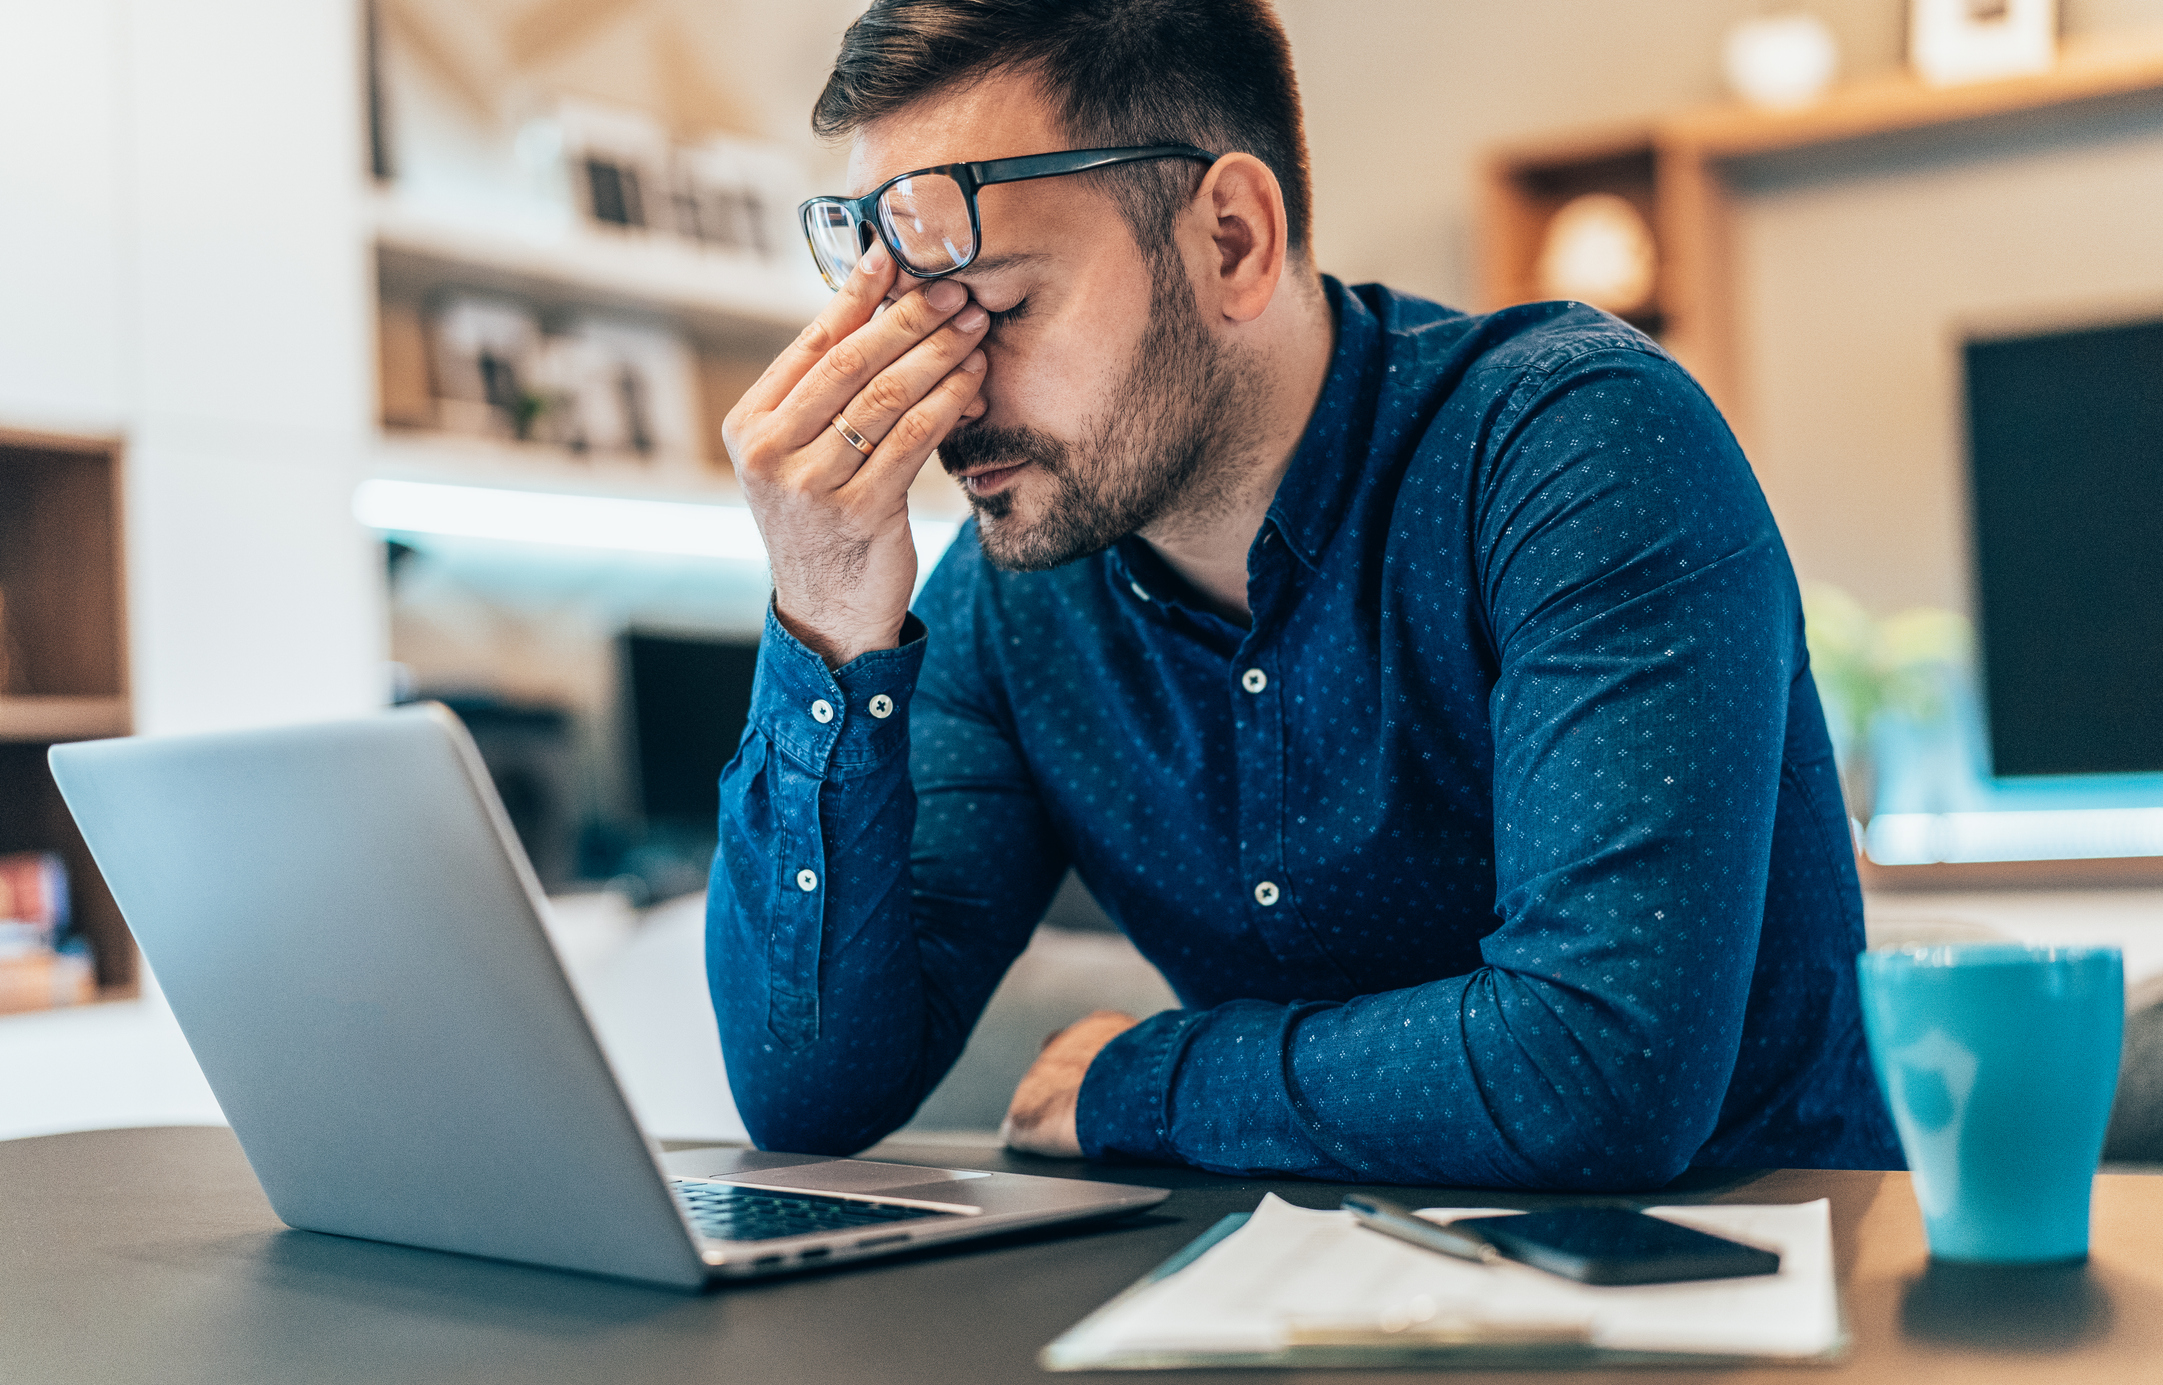 man working in front of laptop and rubbing eyes in frustration